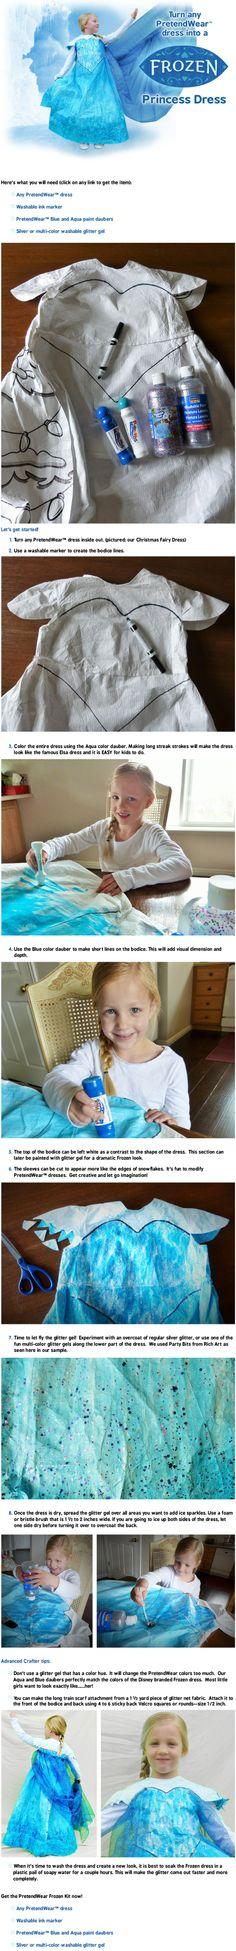 Learn how to make any PretendWear dress into a frozen princess dress just like the movie!